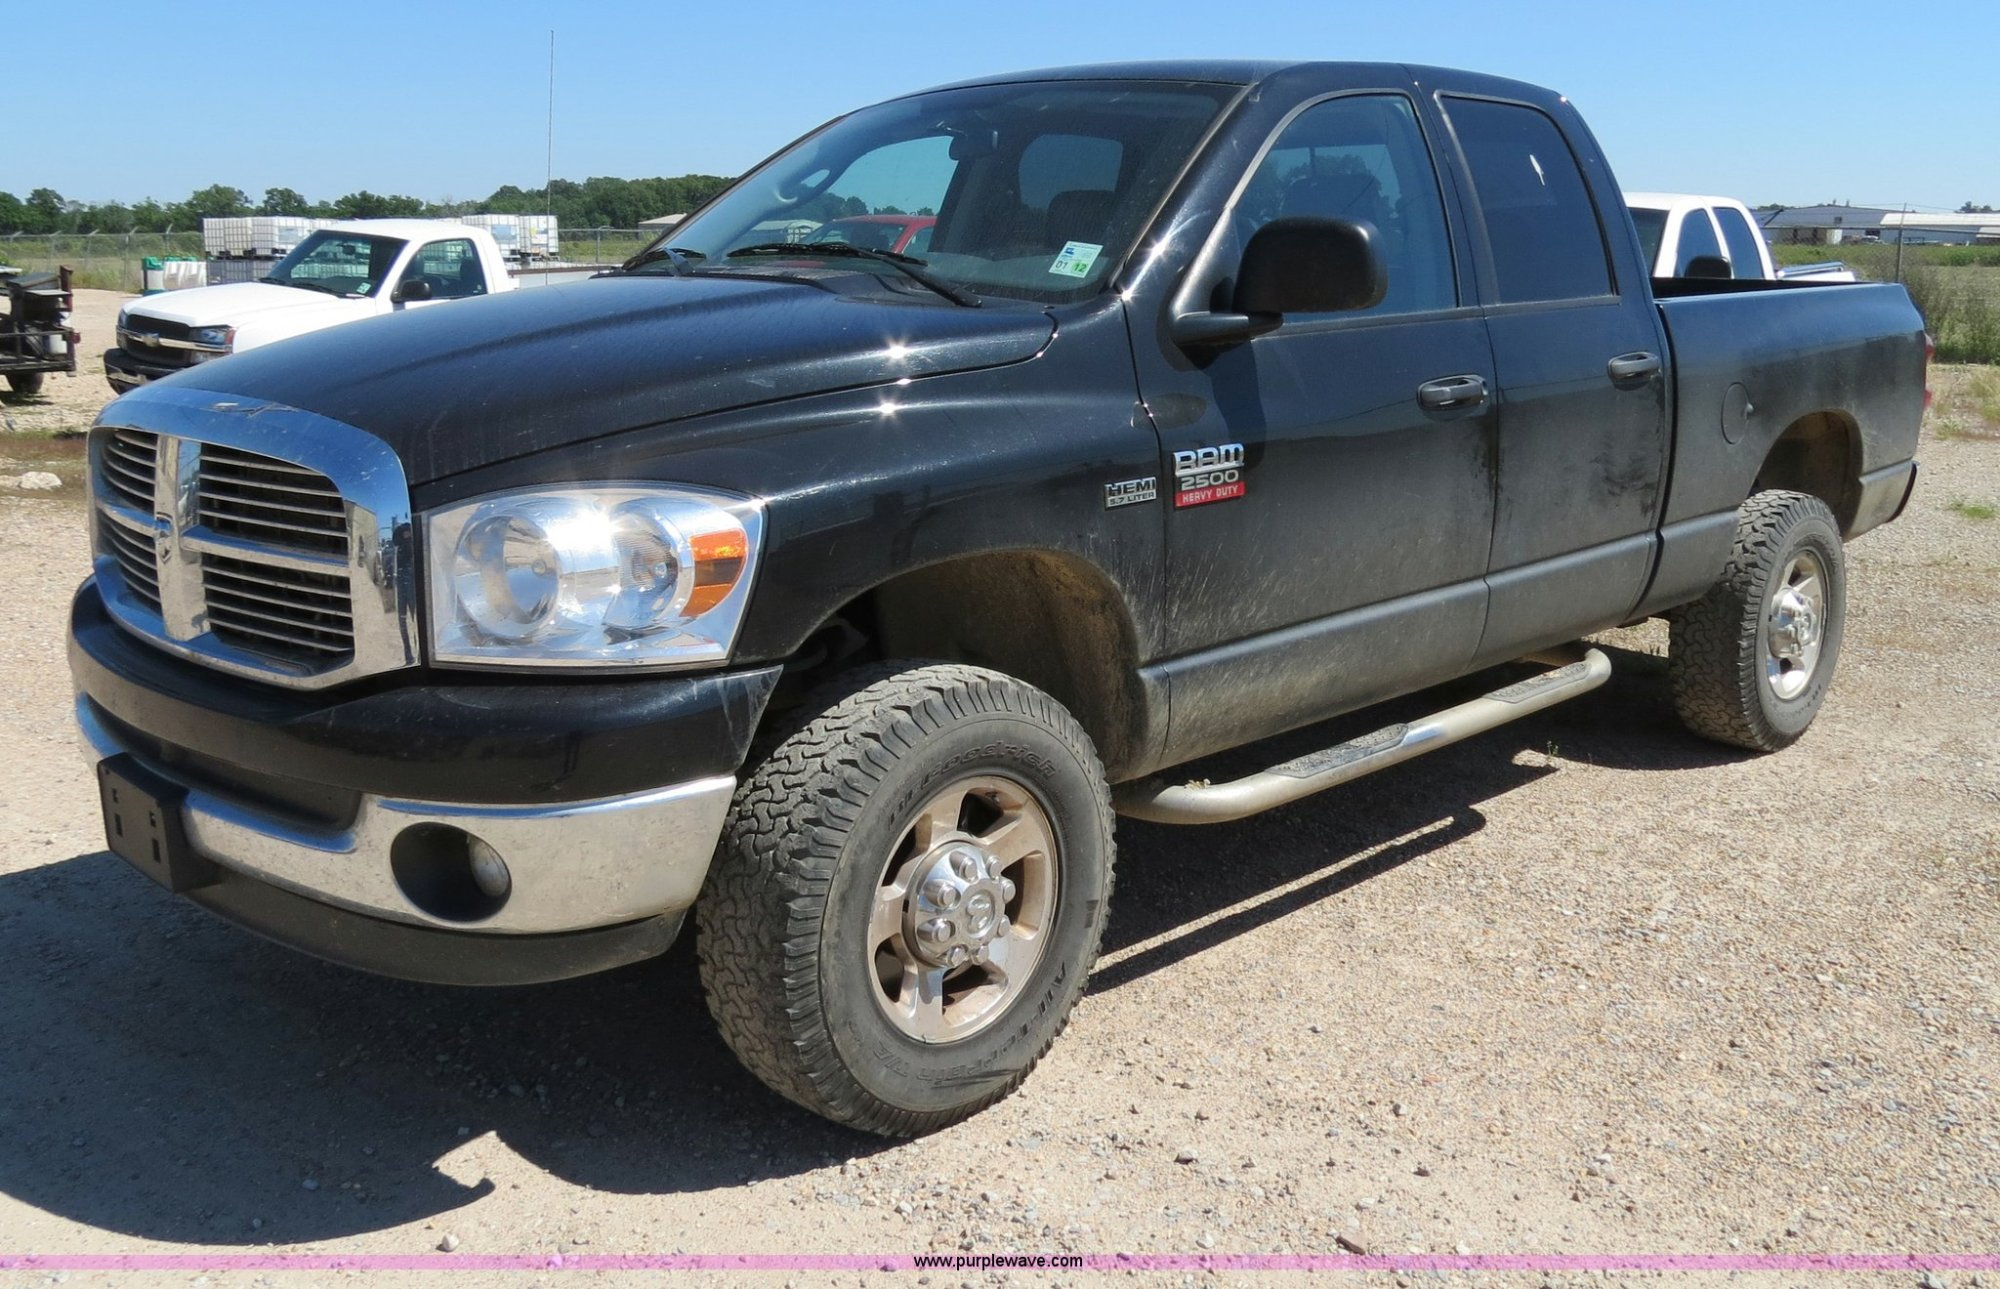 hight resolution of b2329 image for item b2329 2009 dodge ram 2500 heavy duty quad cab